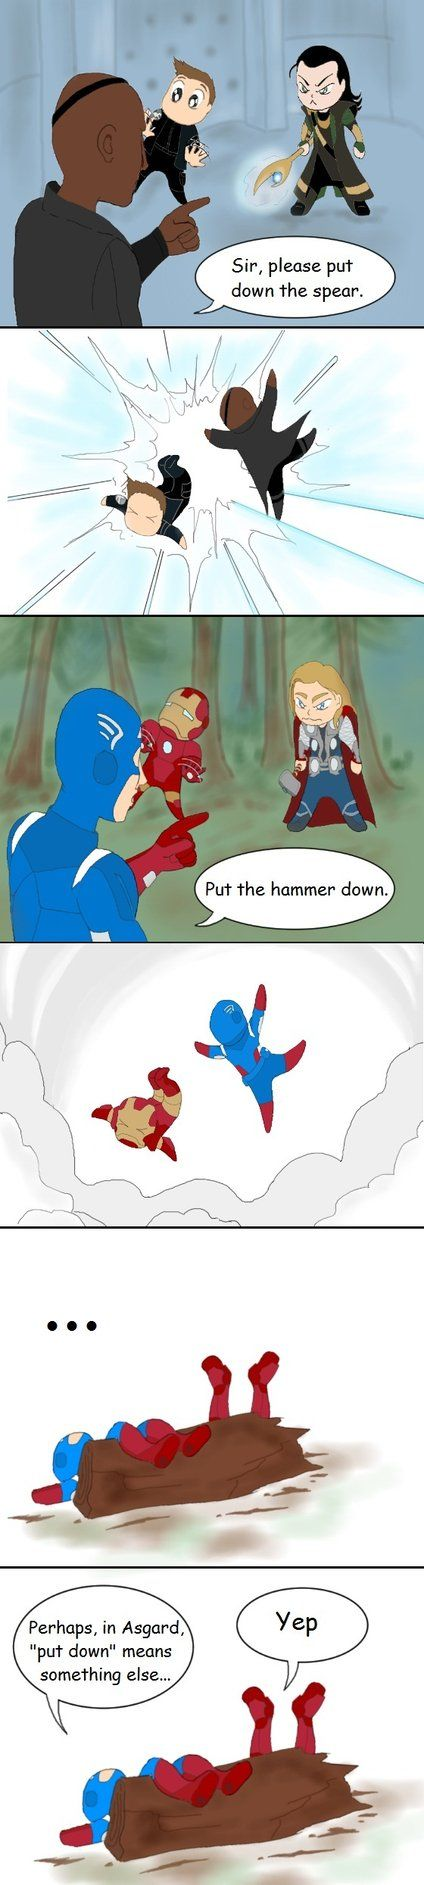 Put Down by Alirusa on deviantART Asking nicely doesn't suit anyone in a swinging mood. Or just Asgardians.